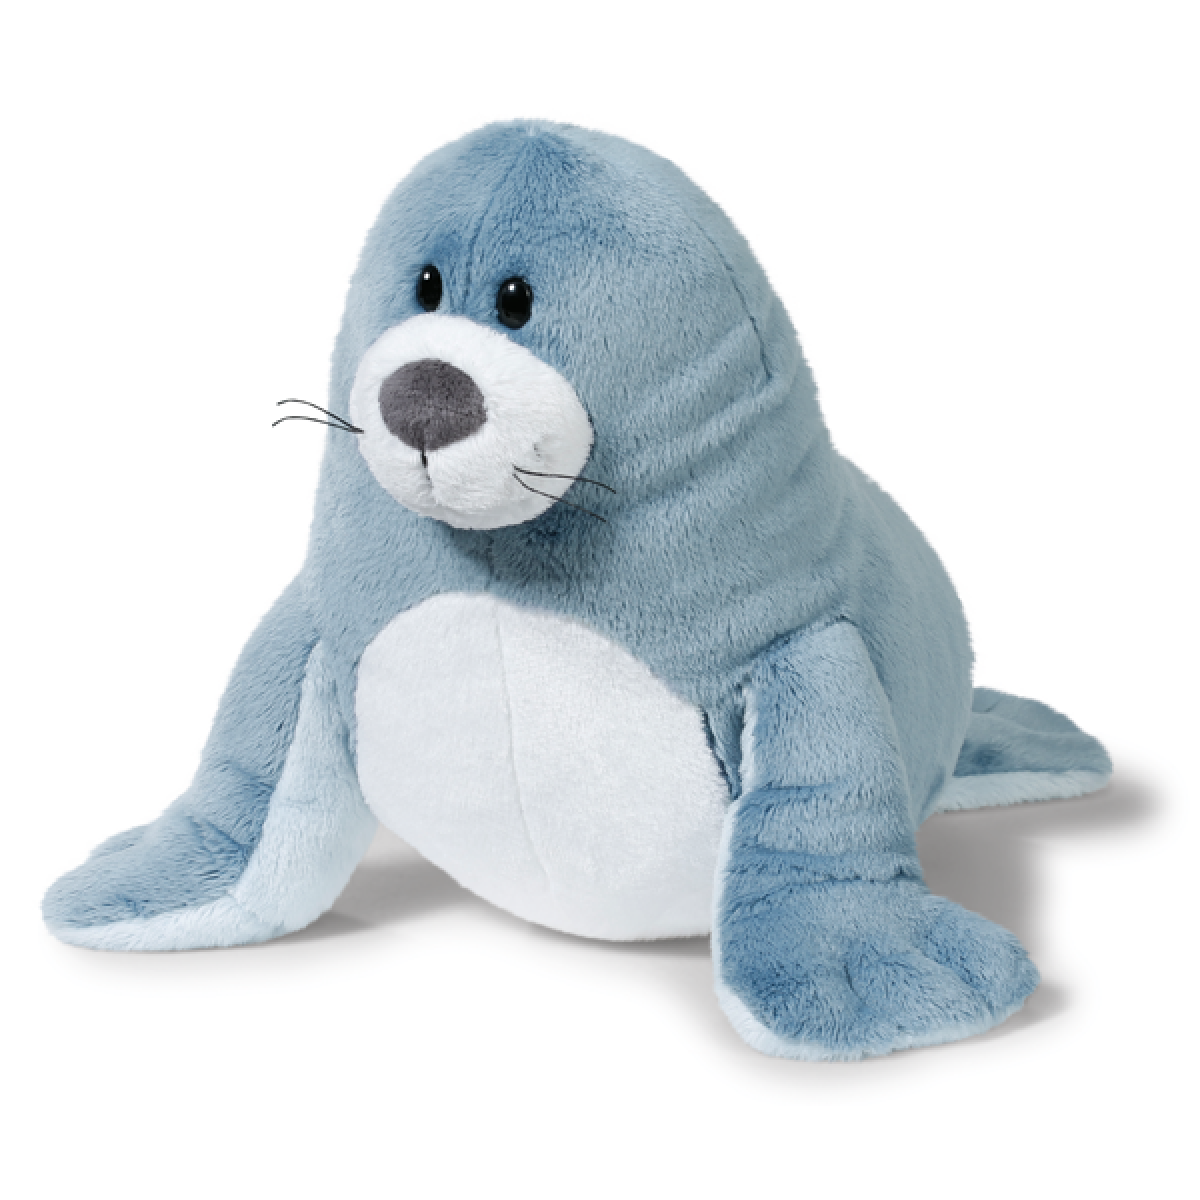 Cuddly Seal - Fully Customisable Plush